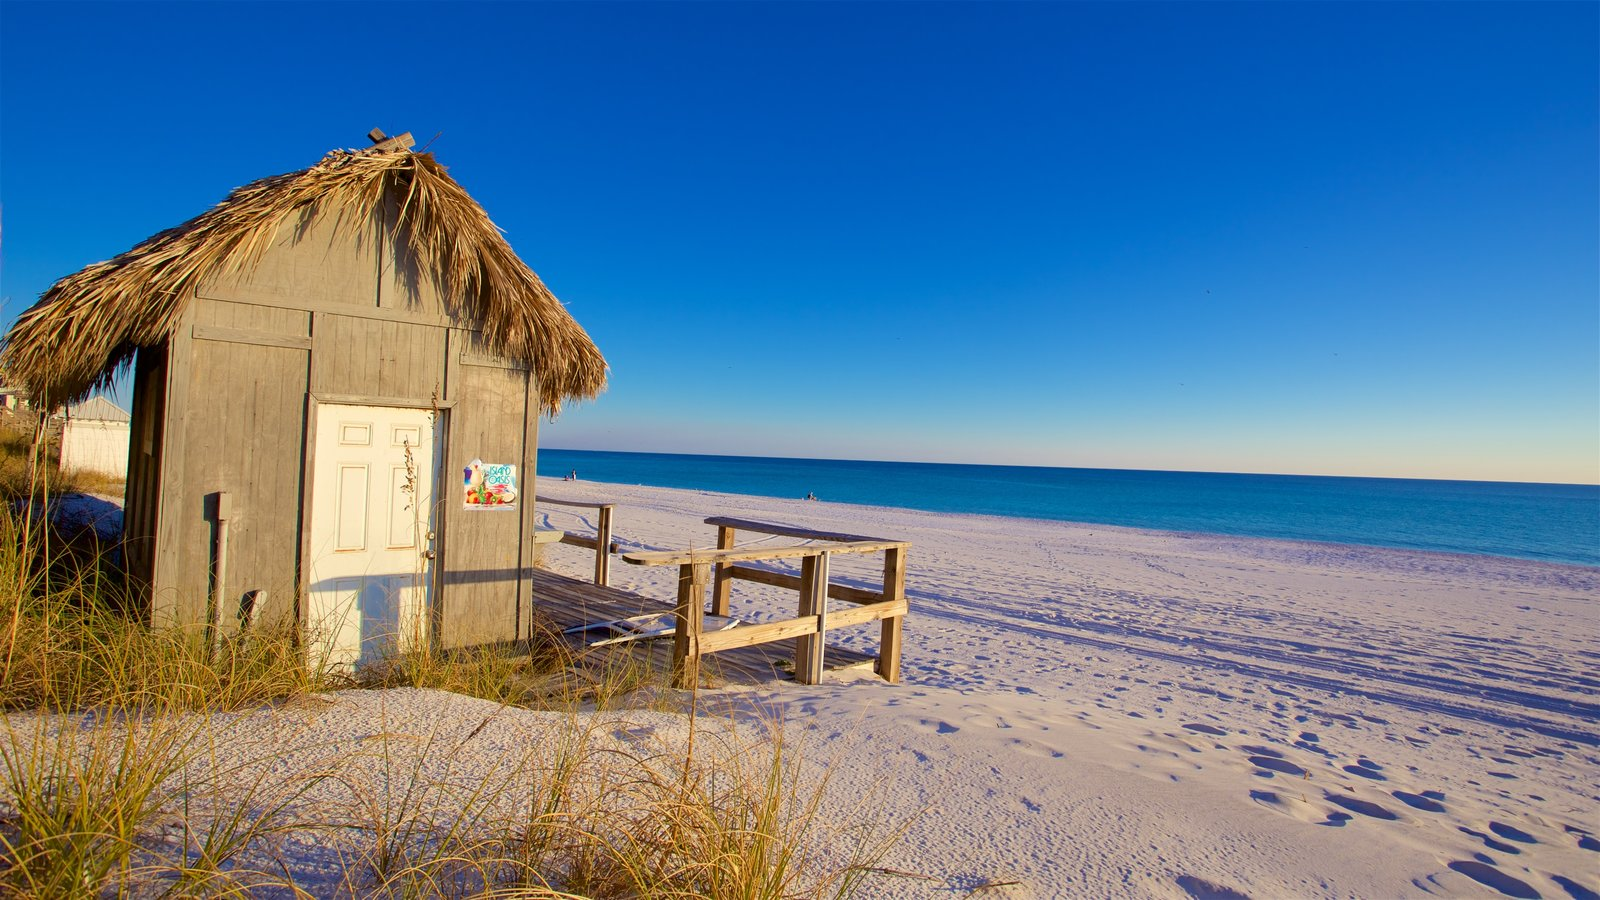 Florida Panhandle showing a sandy beach and a bay or harbor